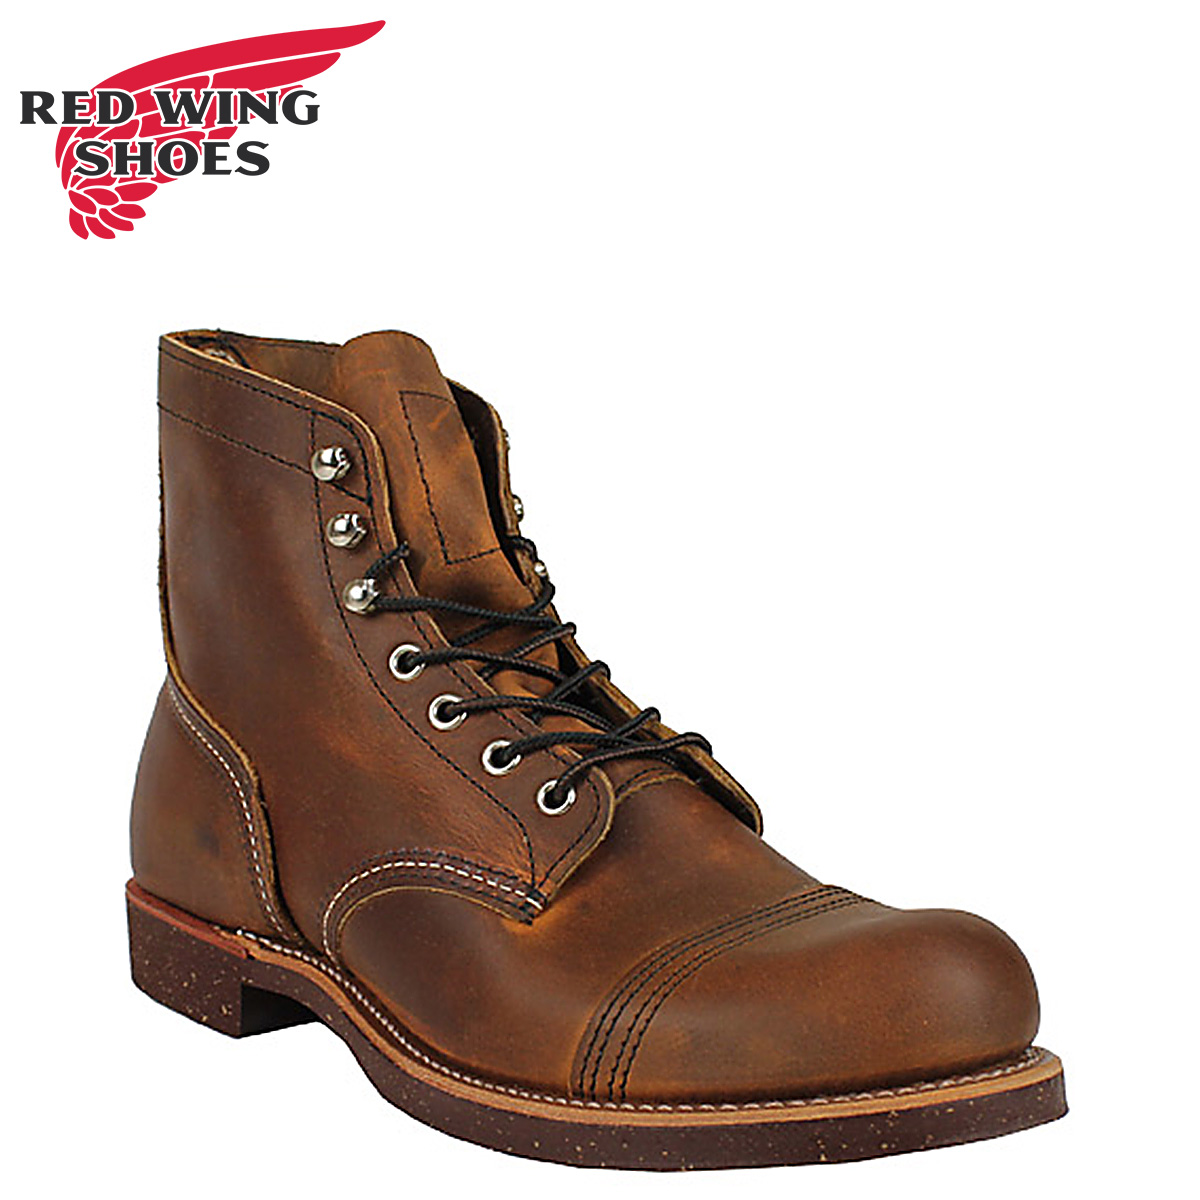 Red Wing Shoes for Men with Steel Toe Biker Boots for Sale